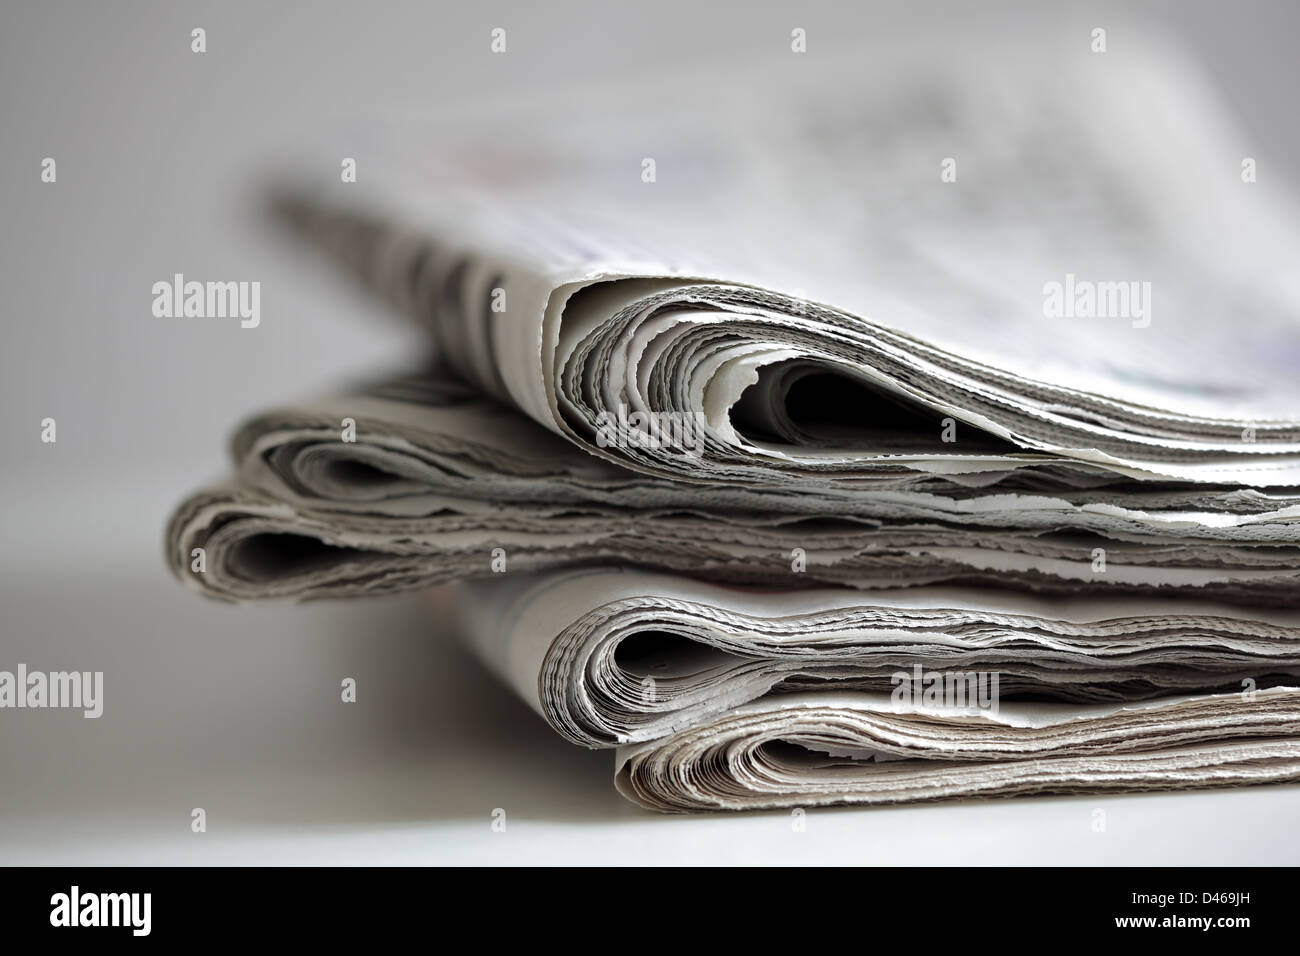 Newspaper - Stock Image